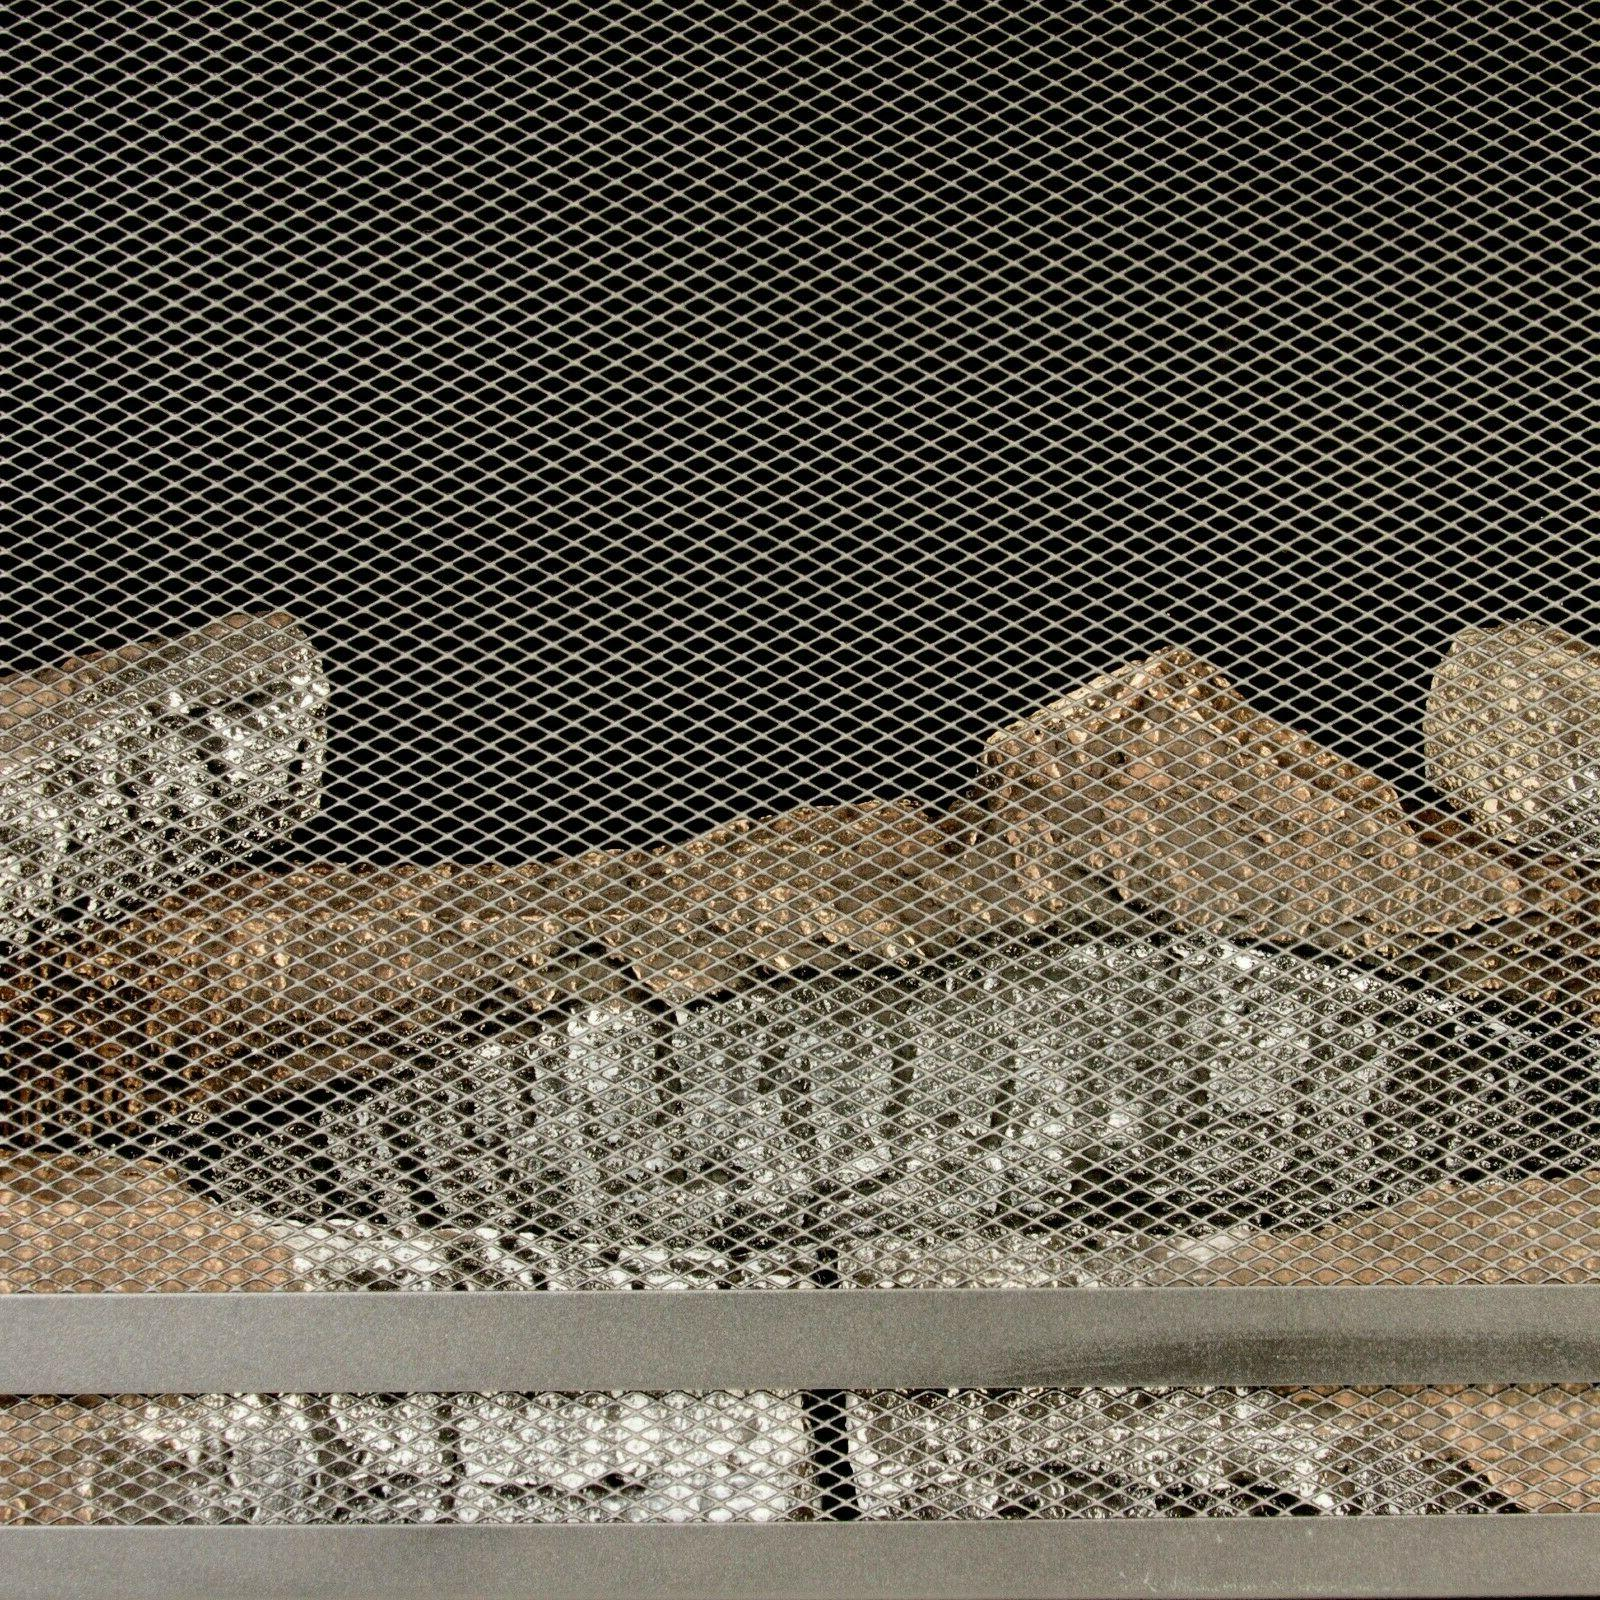 Pleasant Hearth VFS2-PH30DT 30000 BTU Vent-Free Gas Stove, 3